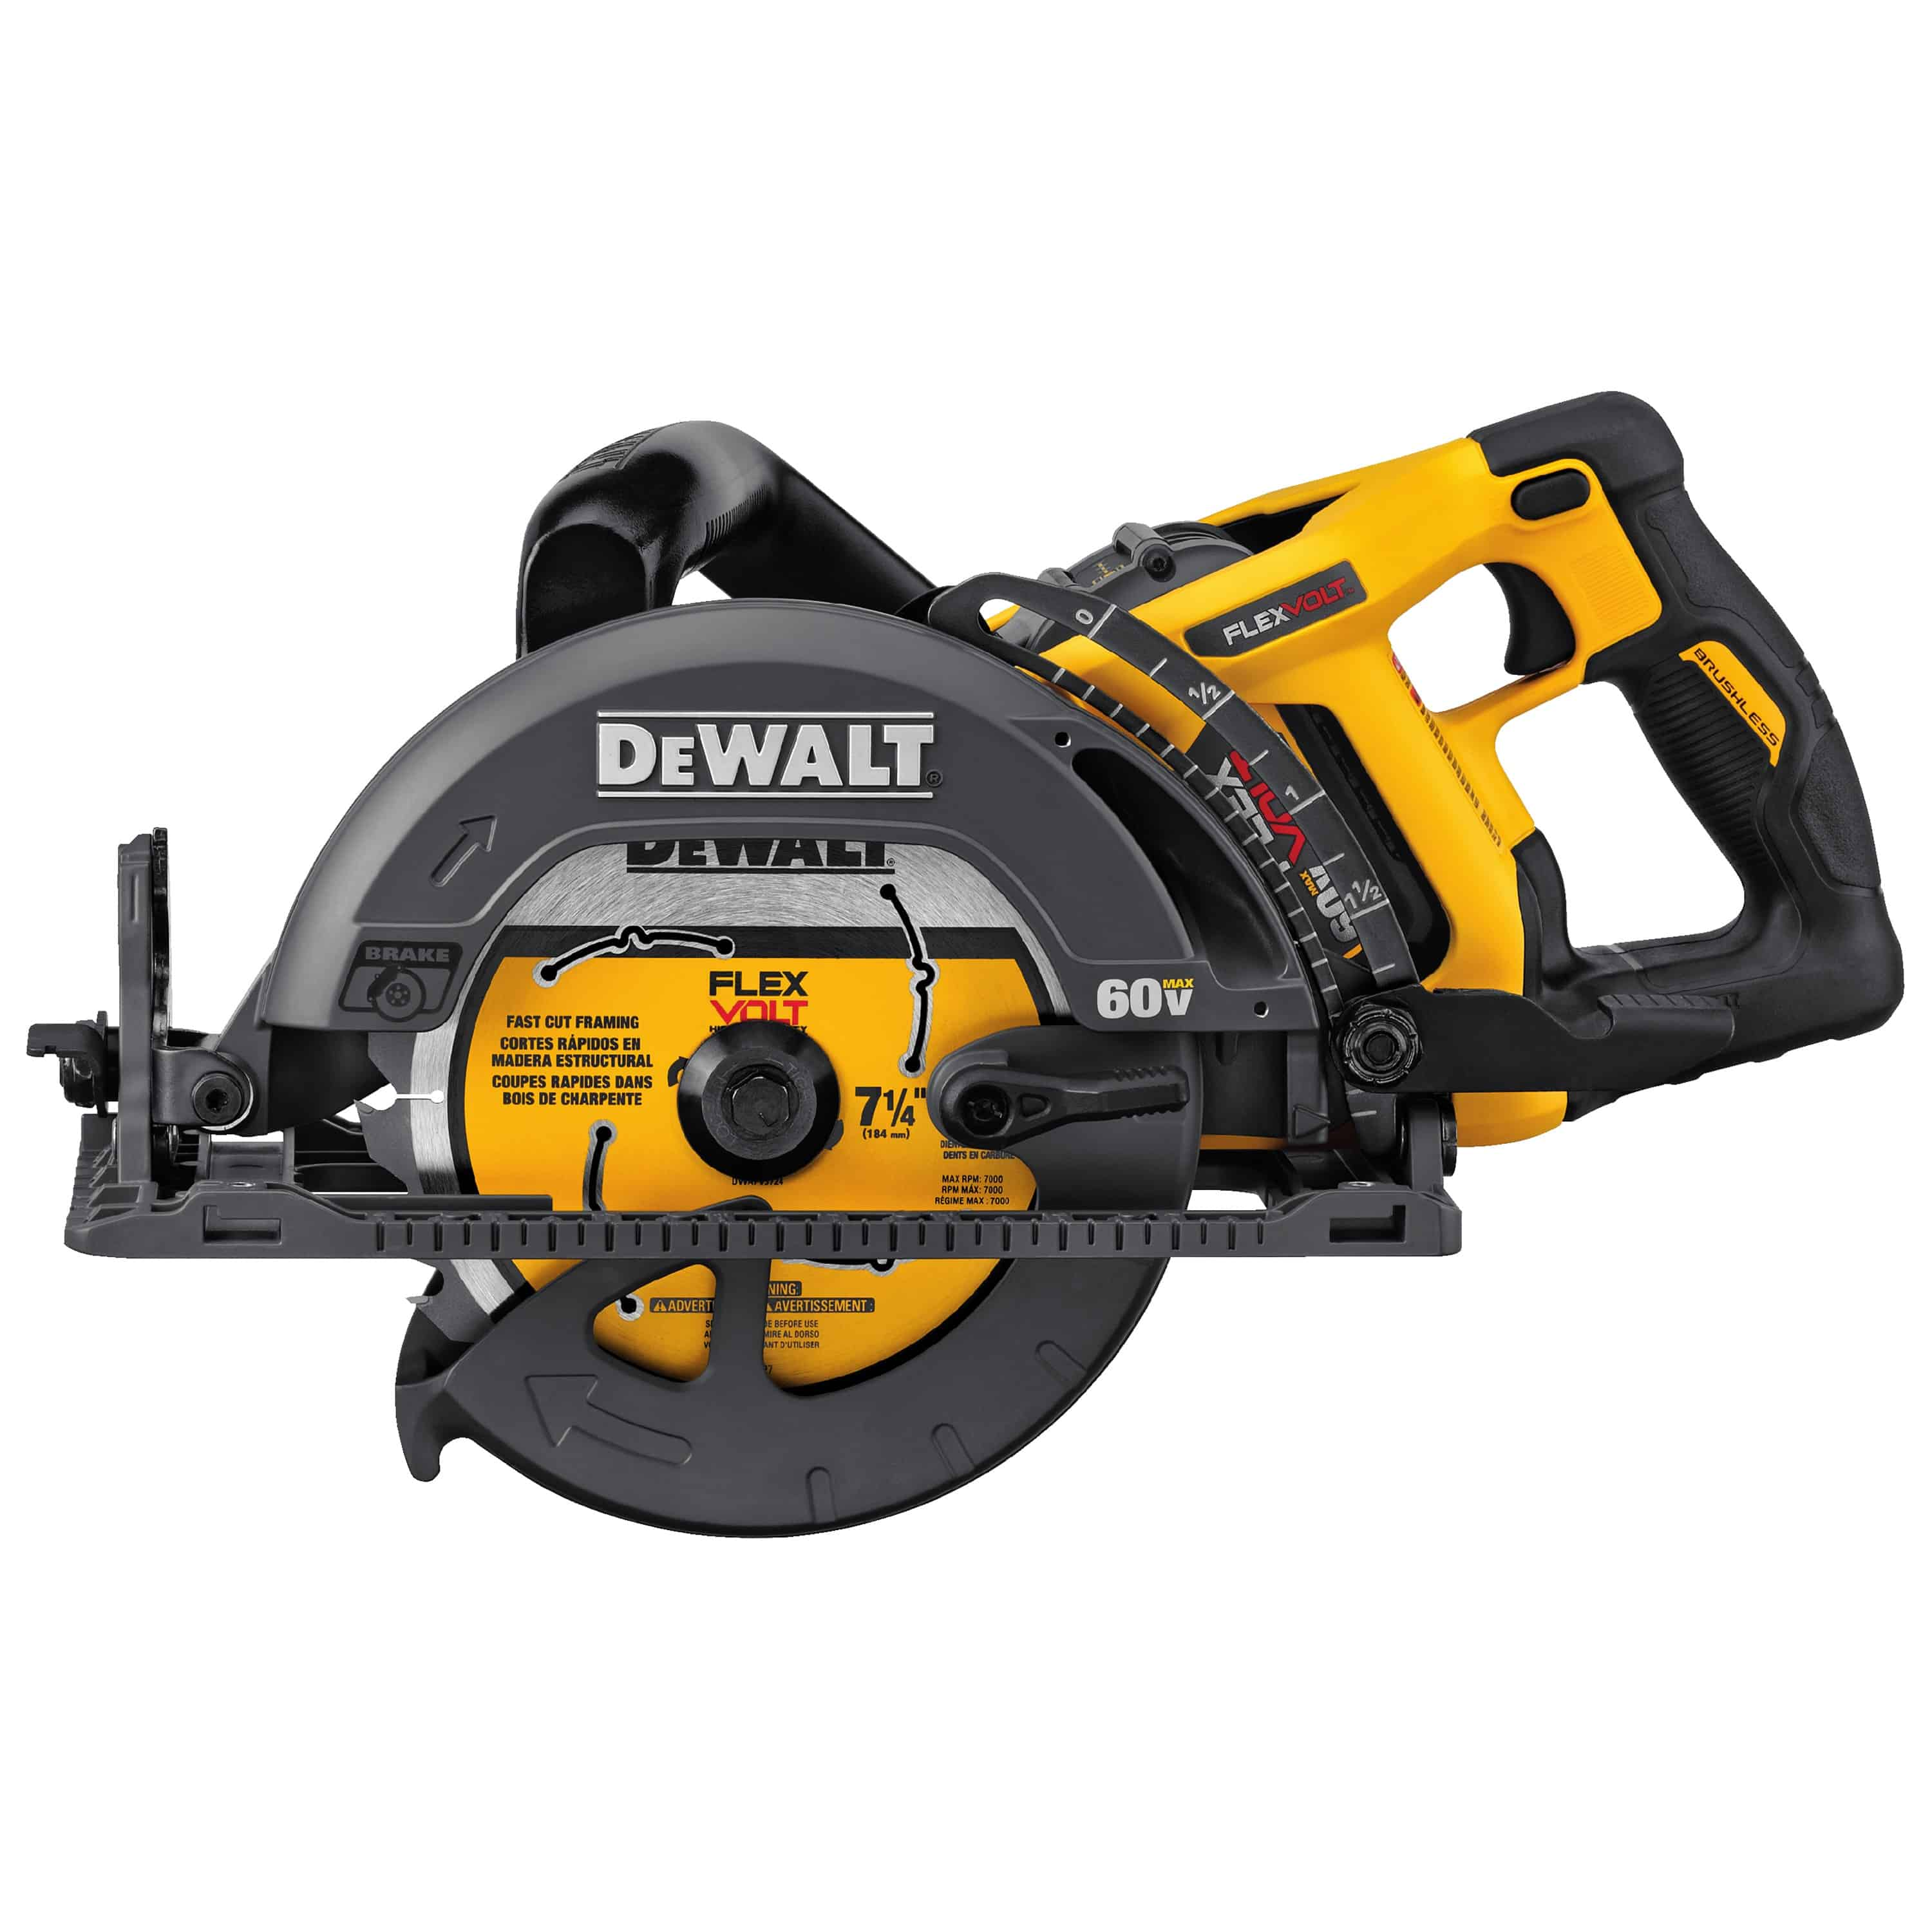 Dewalt 174 Launches Flexvolt 174 60v Max 7 1 4 Worm Drive